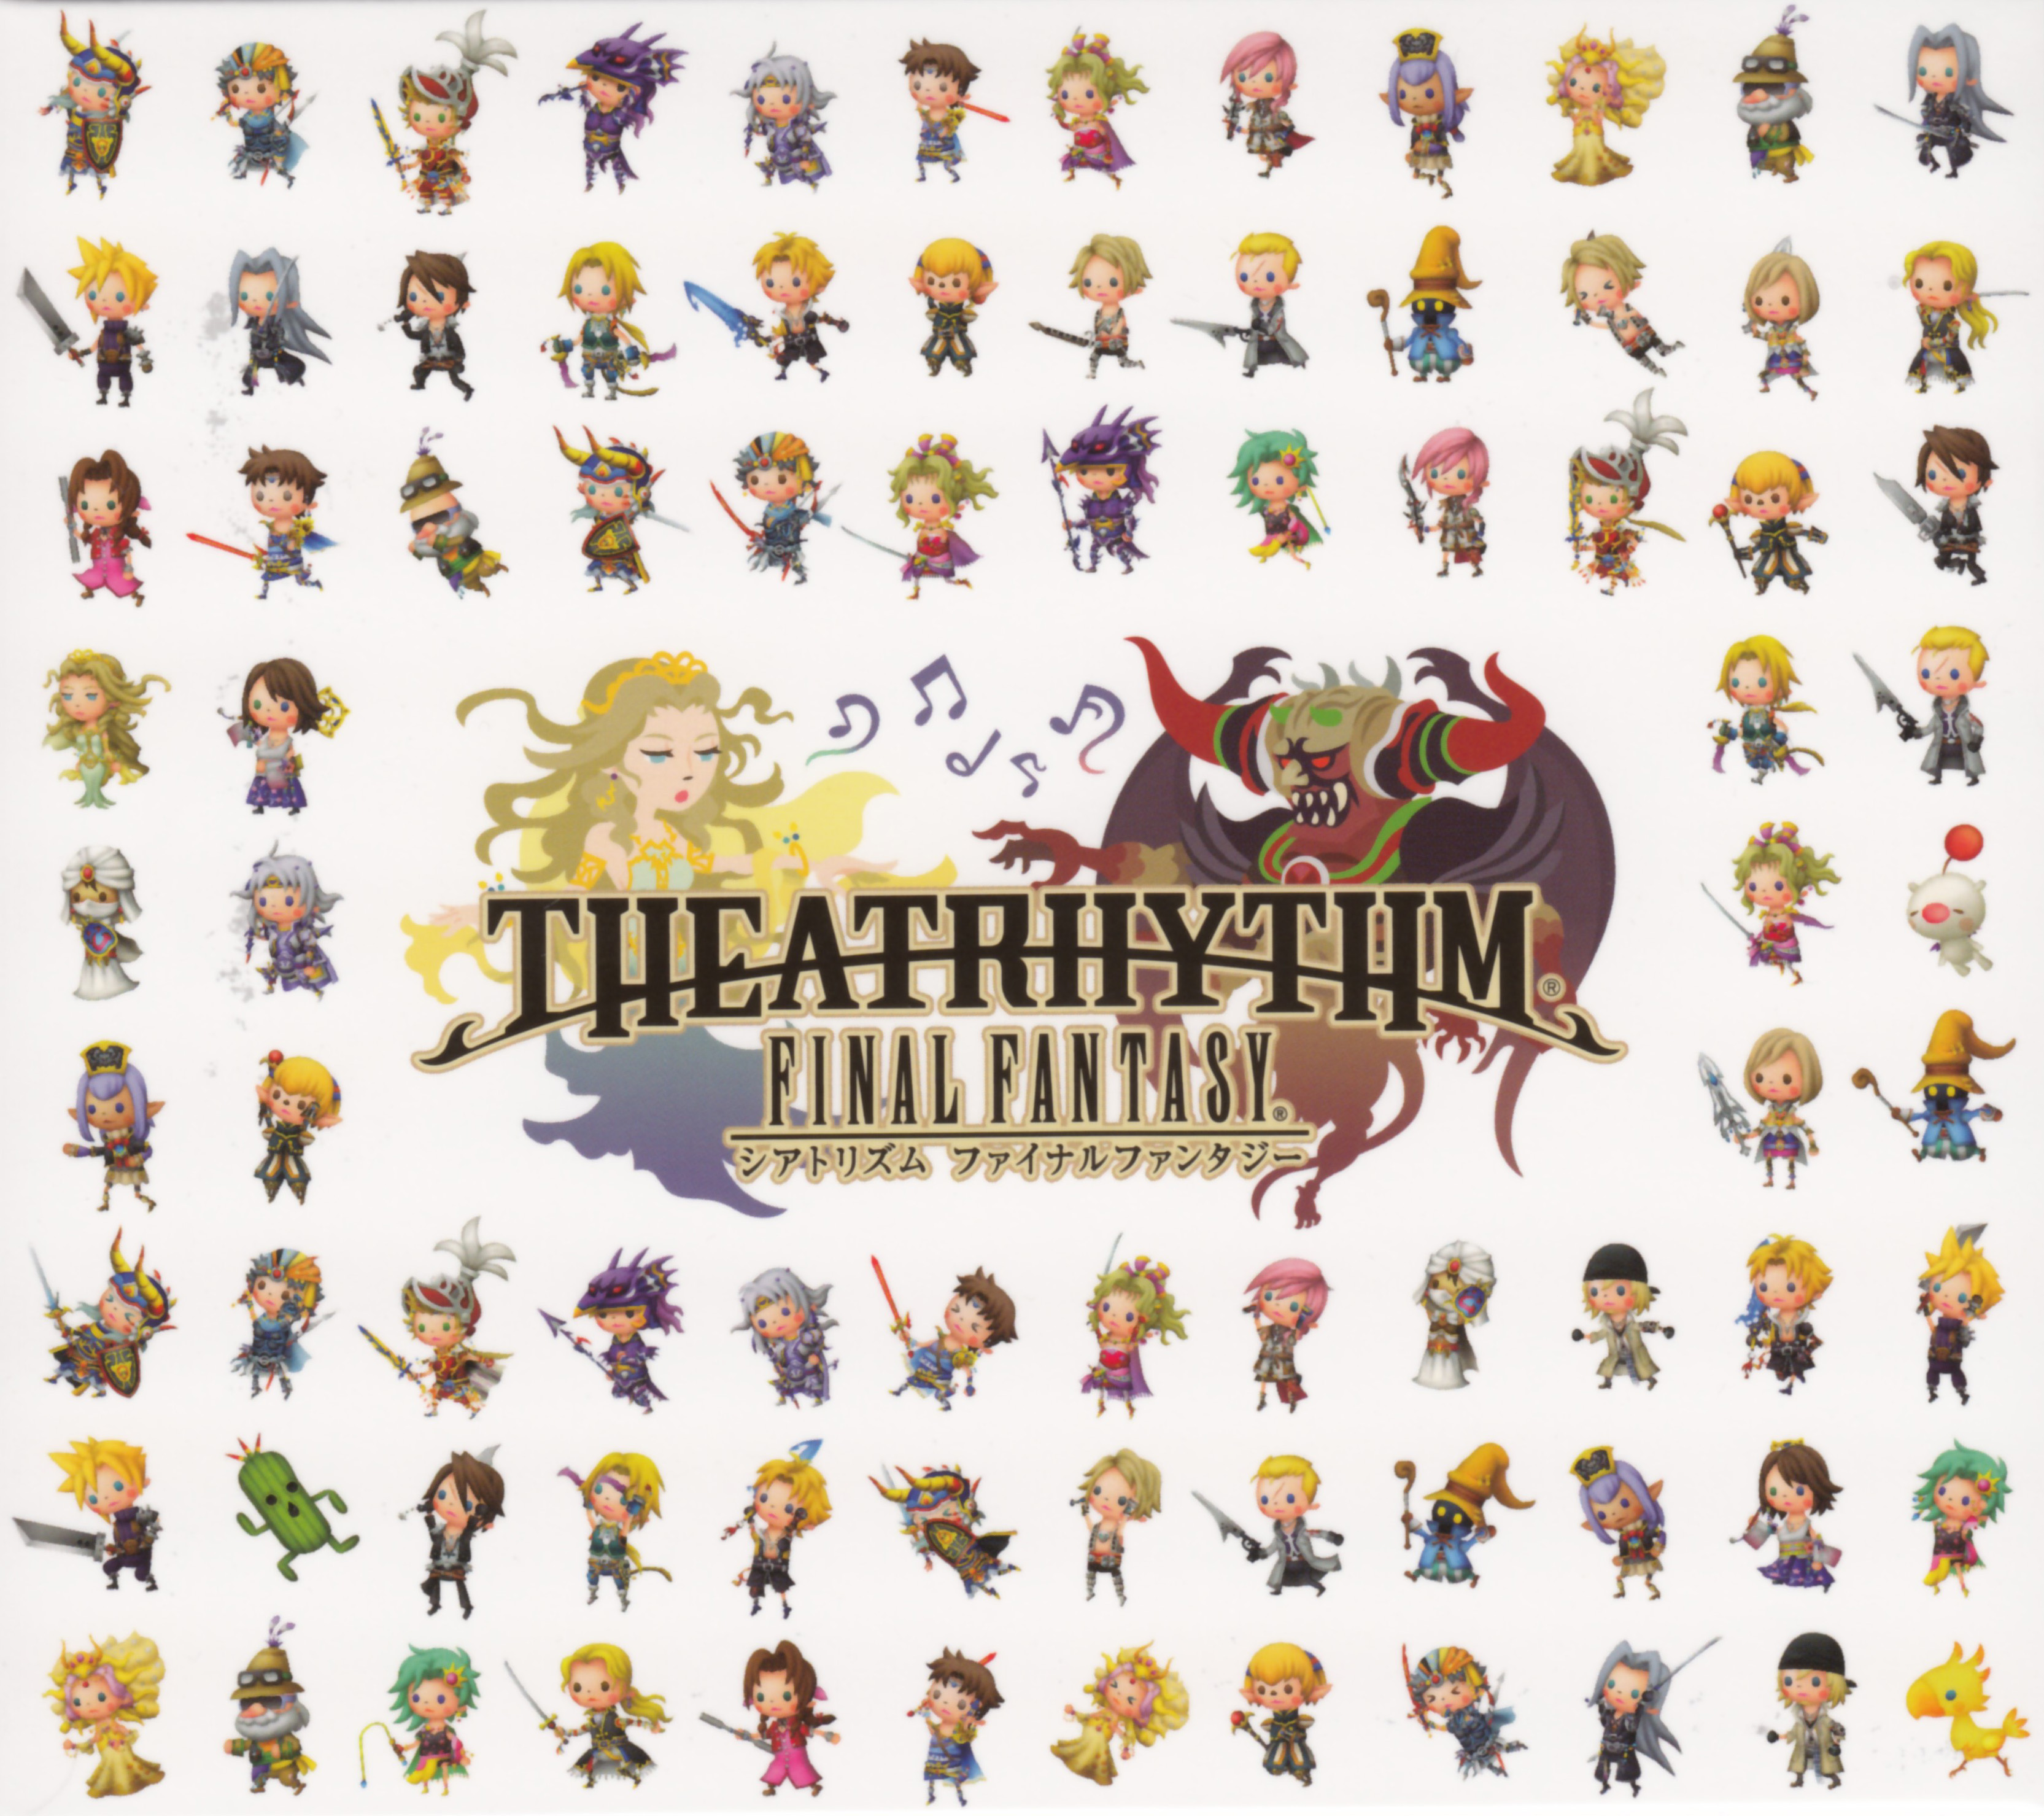 Theatrhythm Final Fantasy Compilation Album